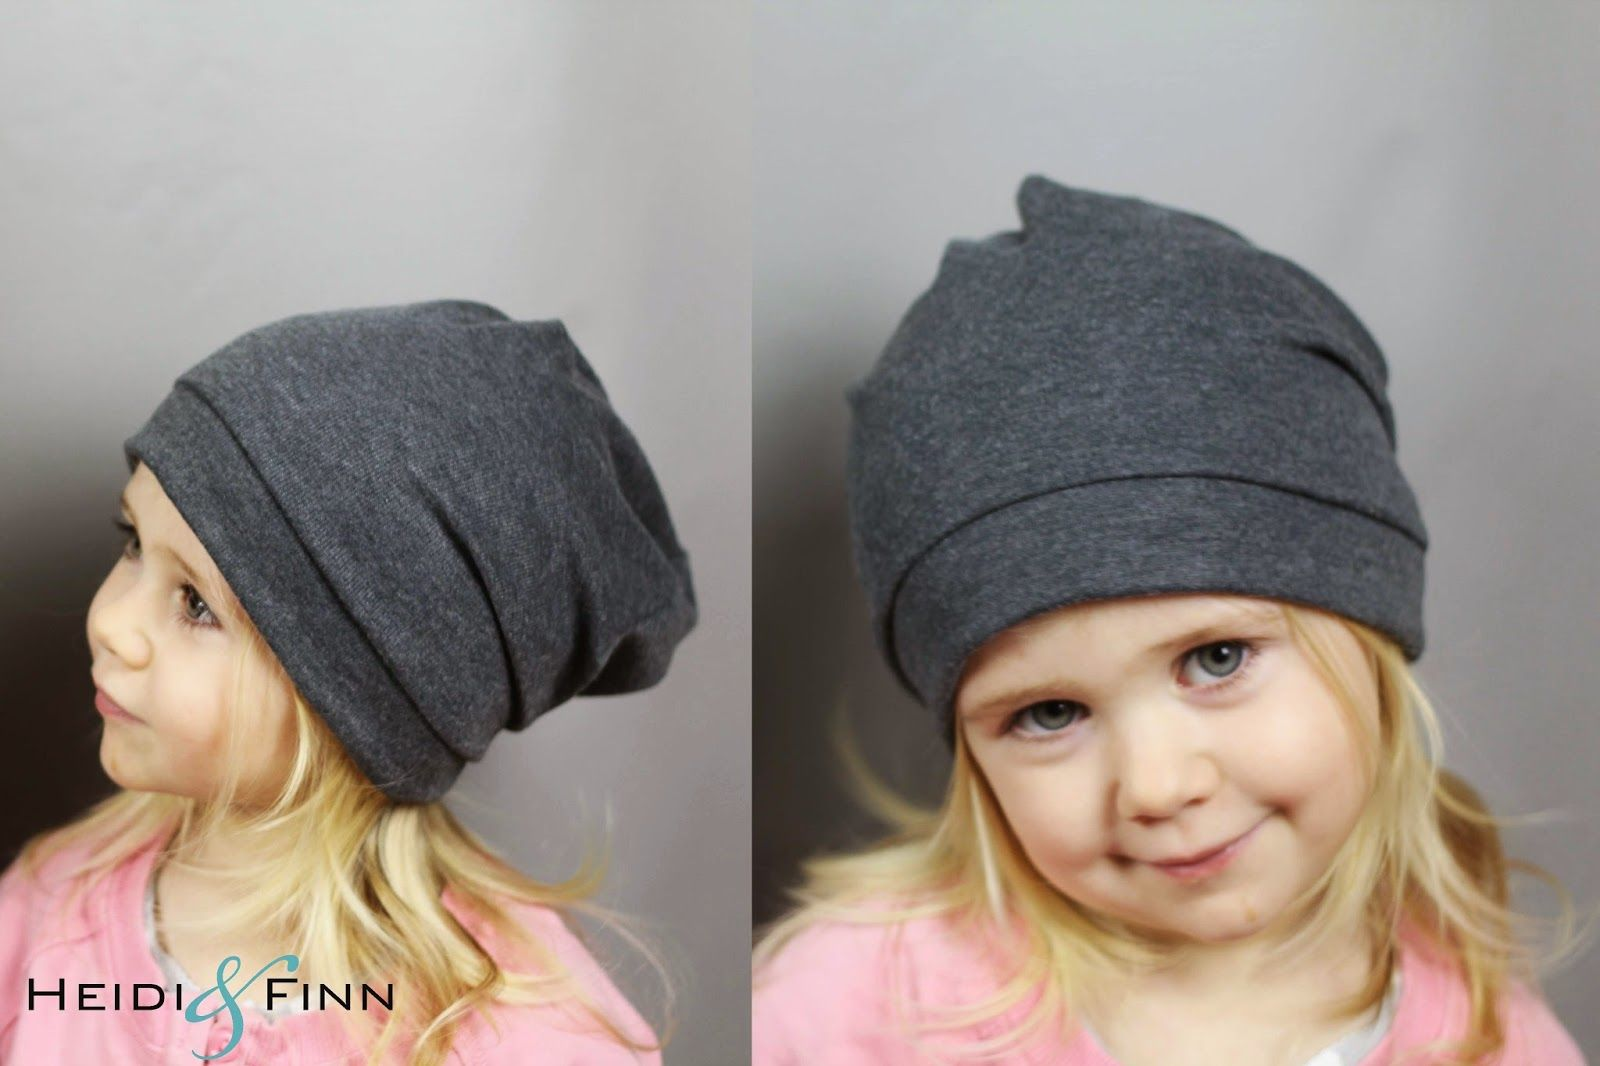 Heidiandfinn modern wears for kids slouchy beanie hat free heidiandfinn modern wears for kids slouchy beanie hat free pattern for kids clothes week bankloansurffo Image collections